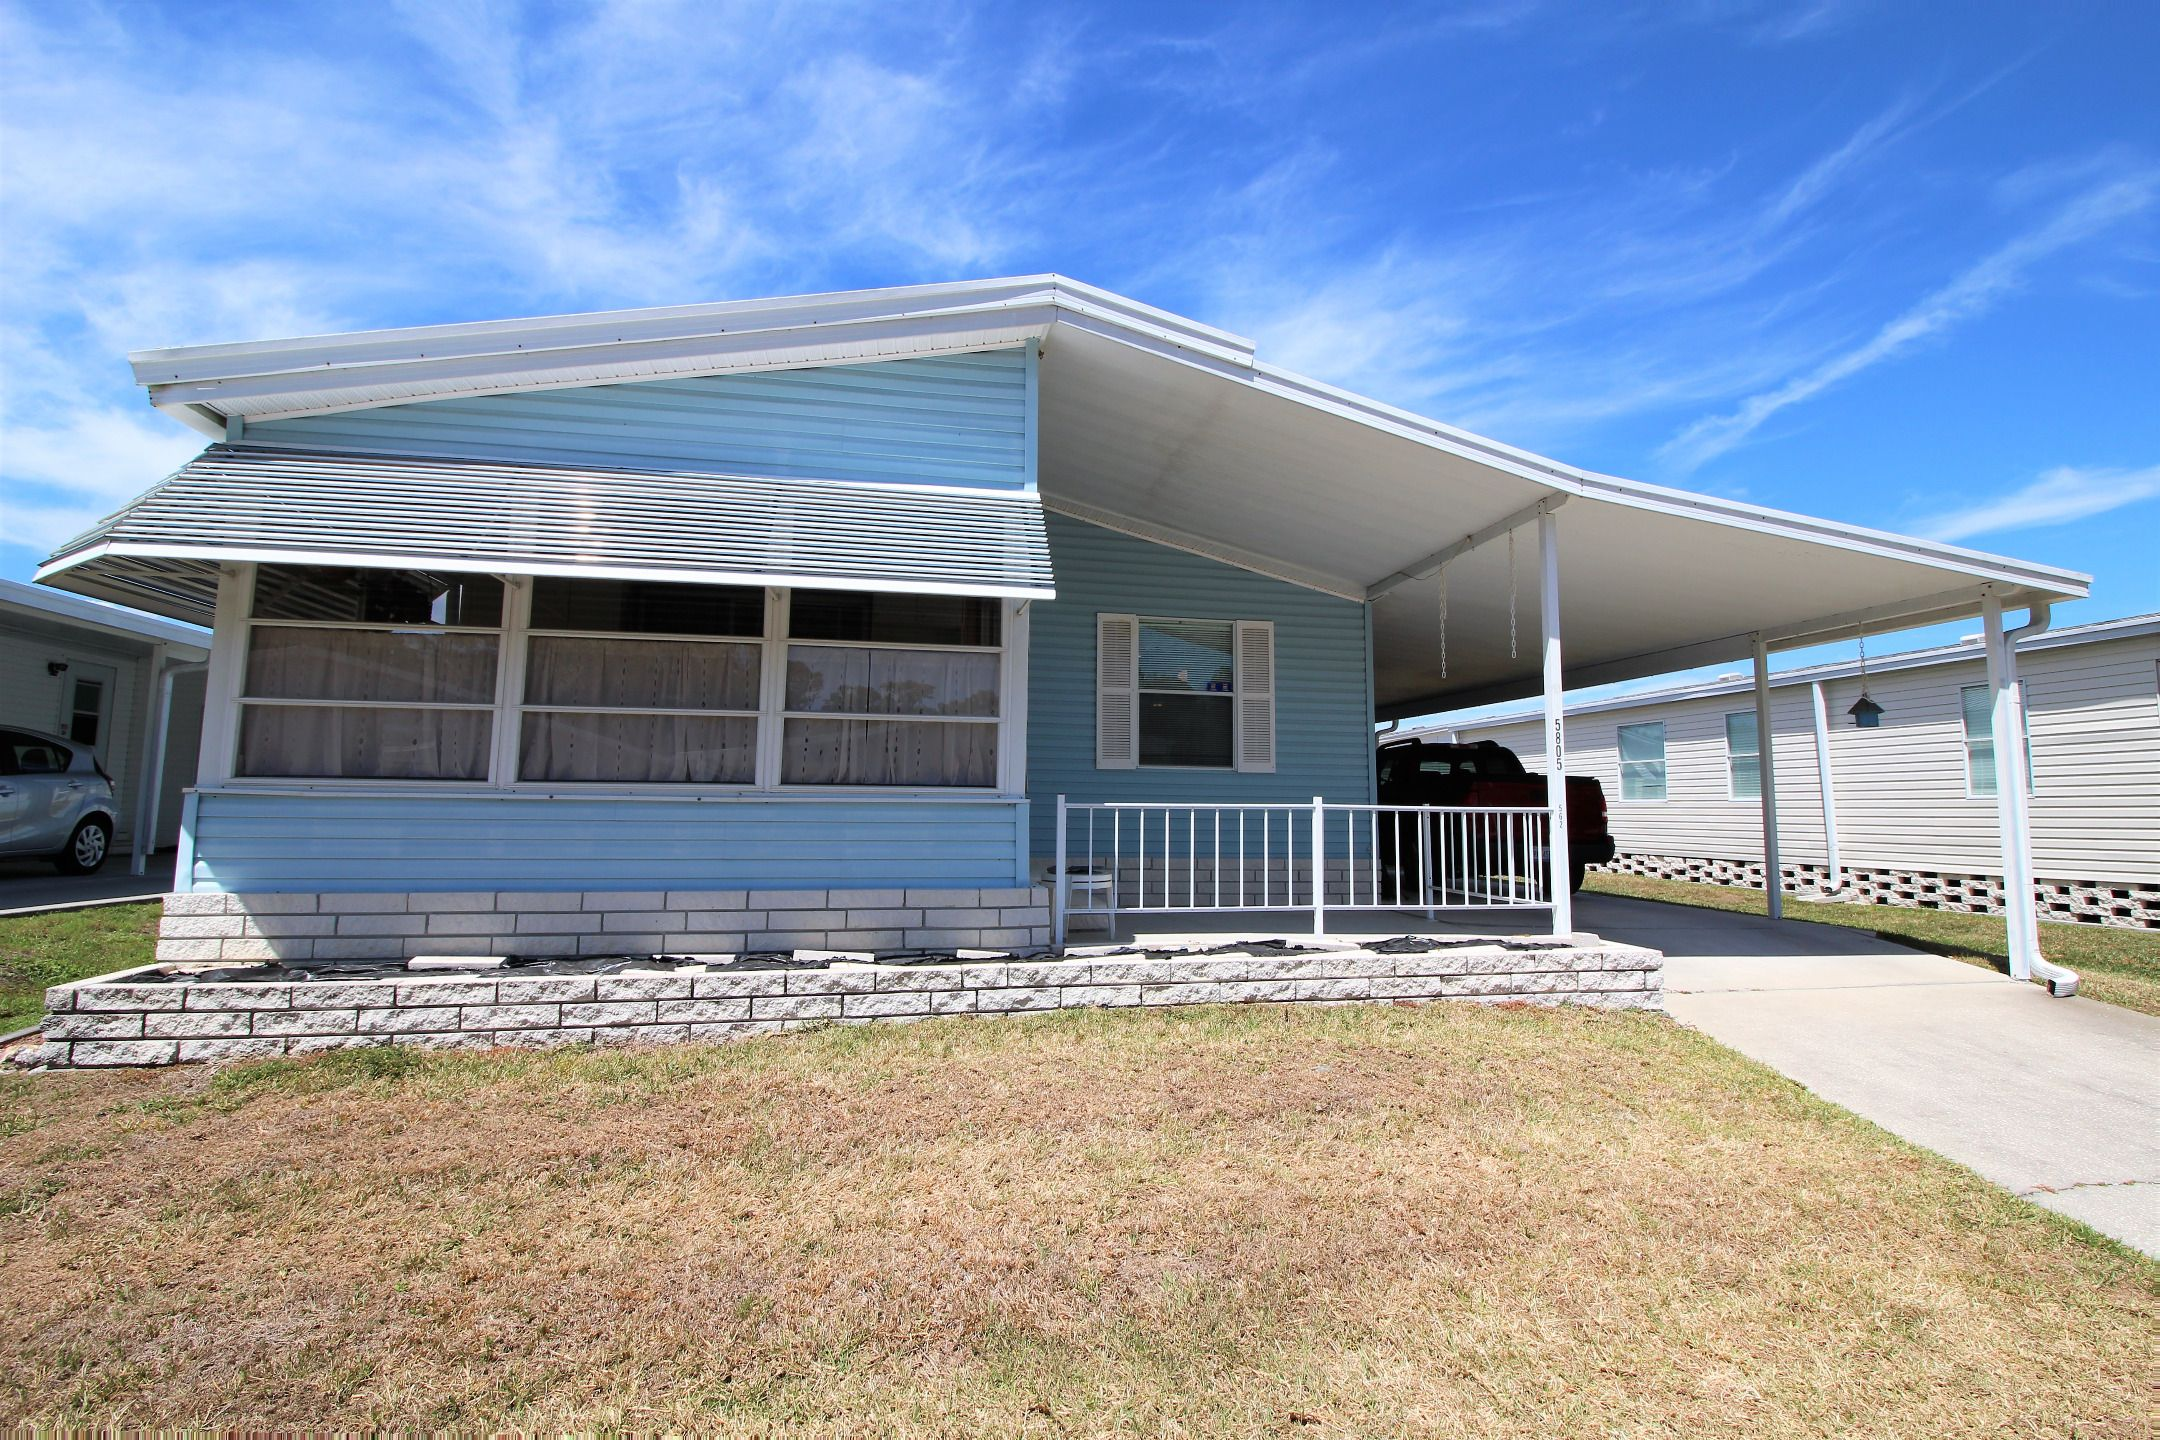 Front view 1994 sunc mobile manufactured home in